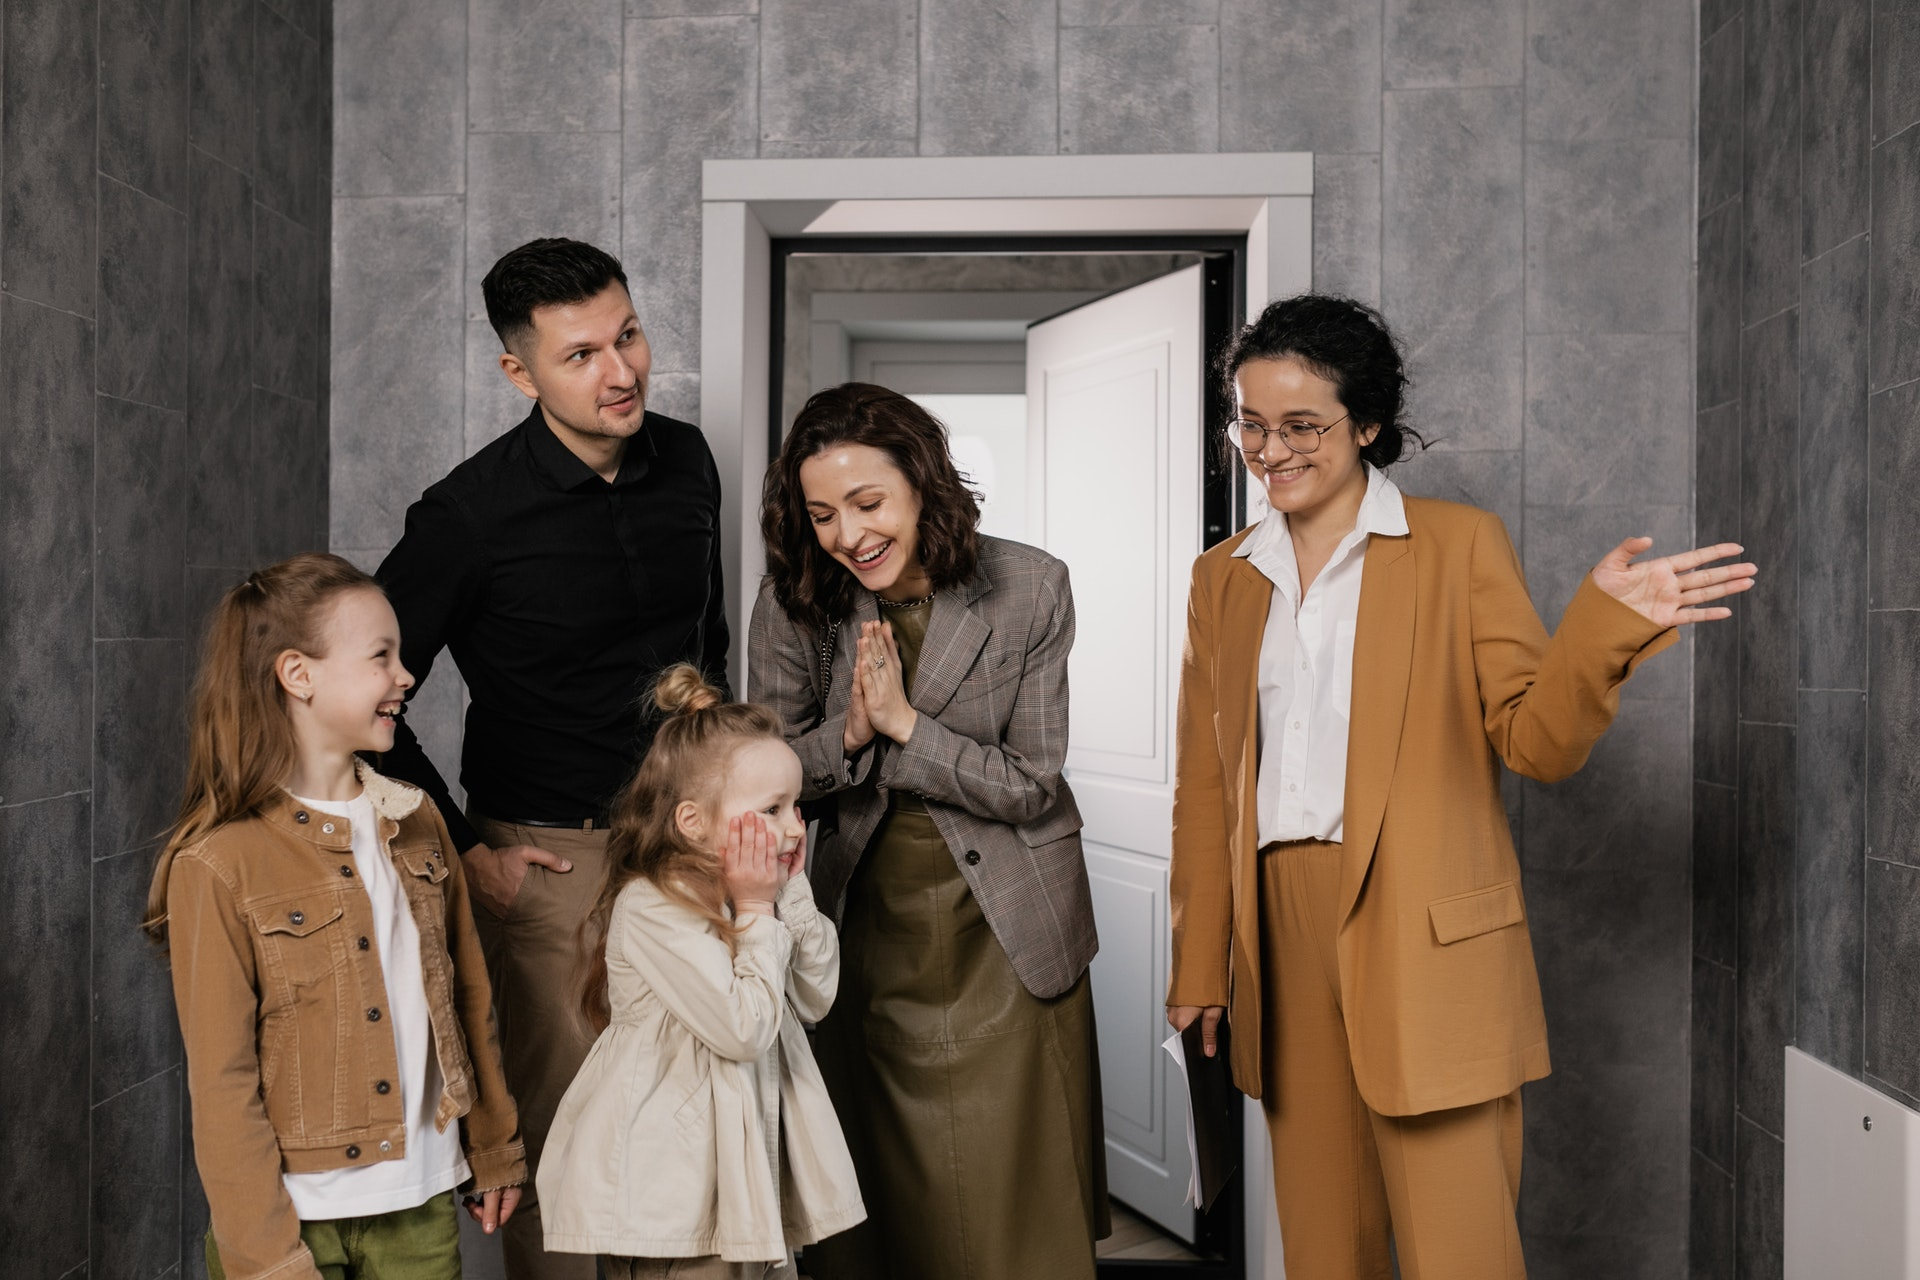 A family with their realtor